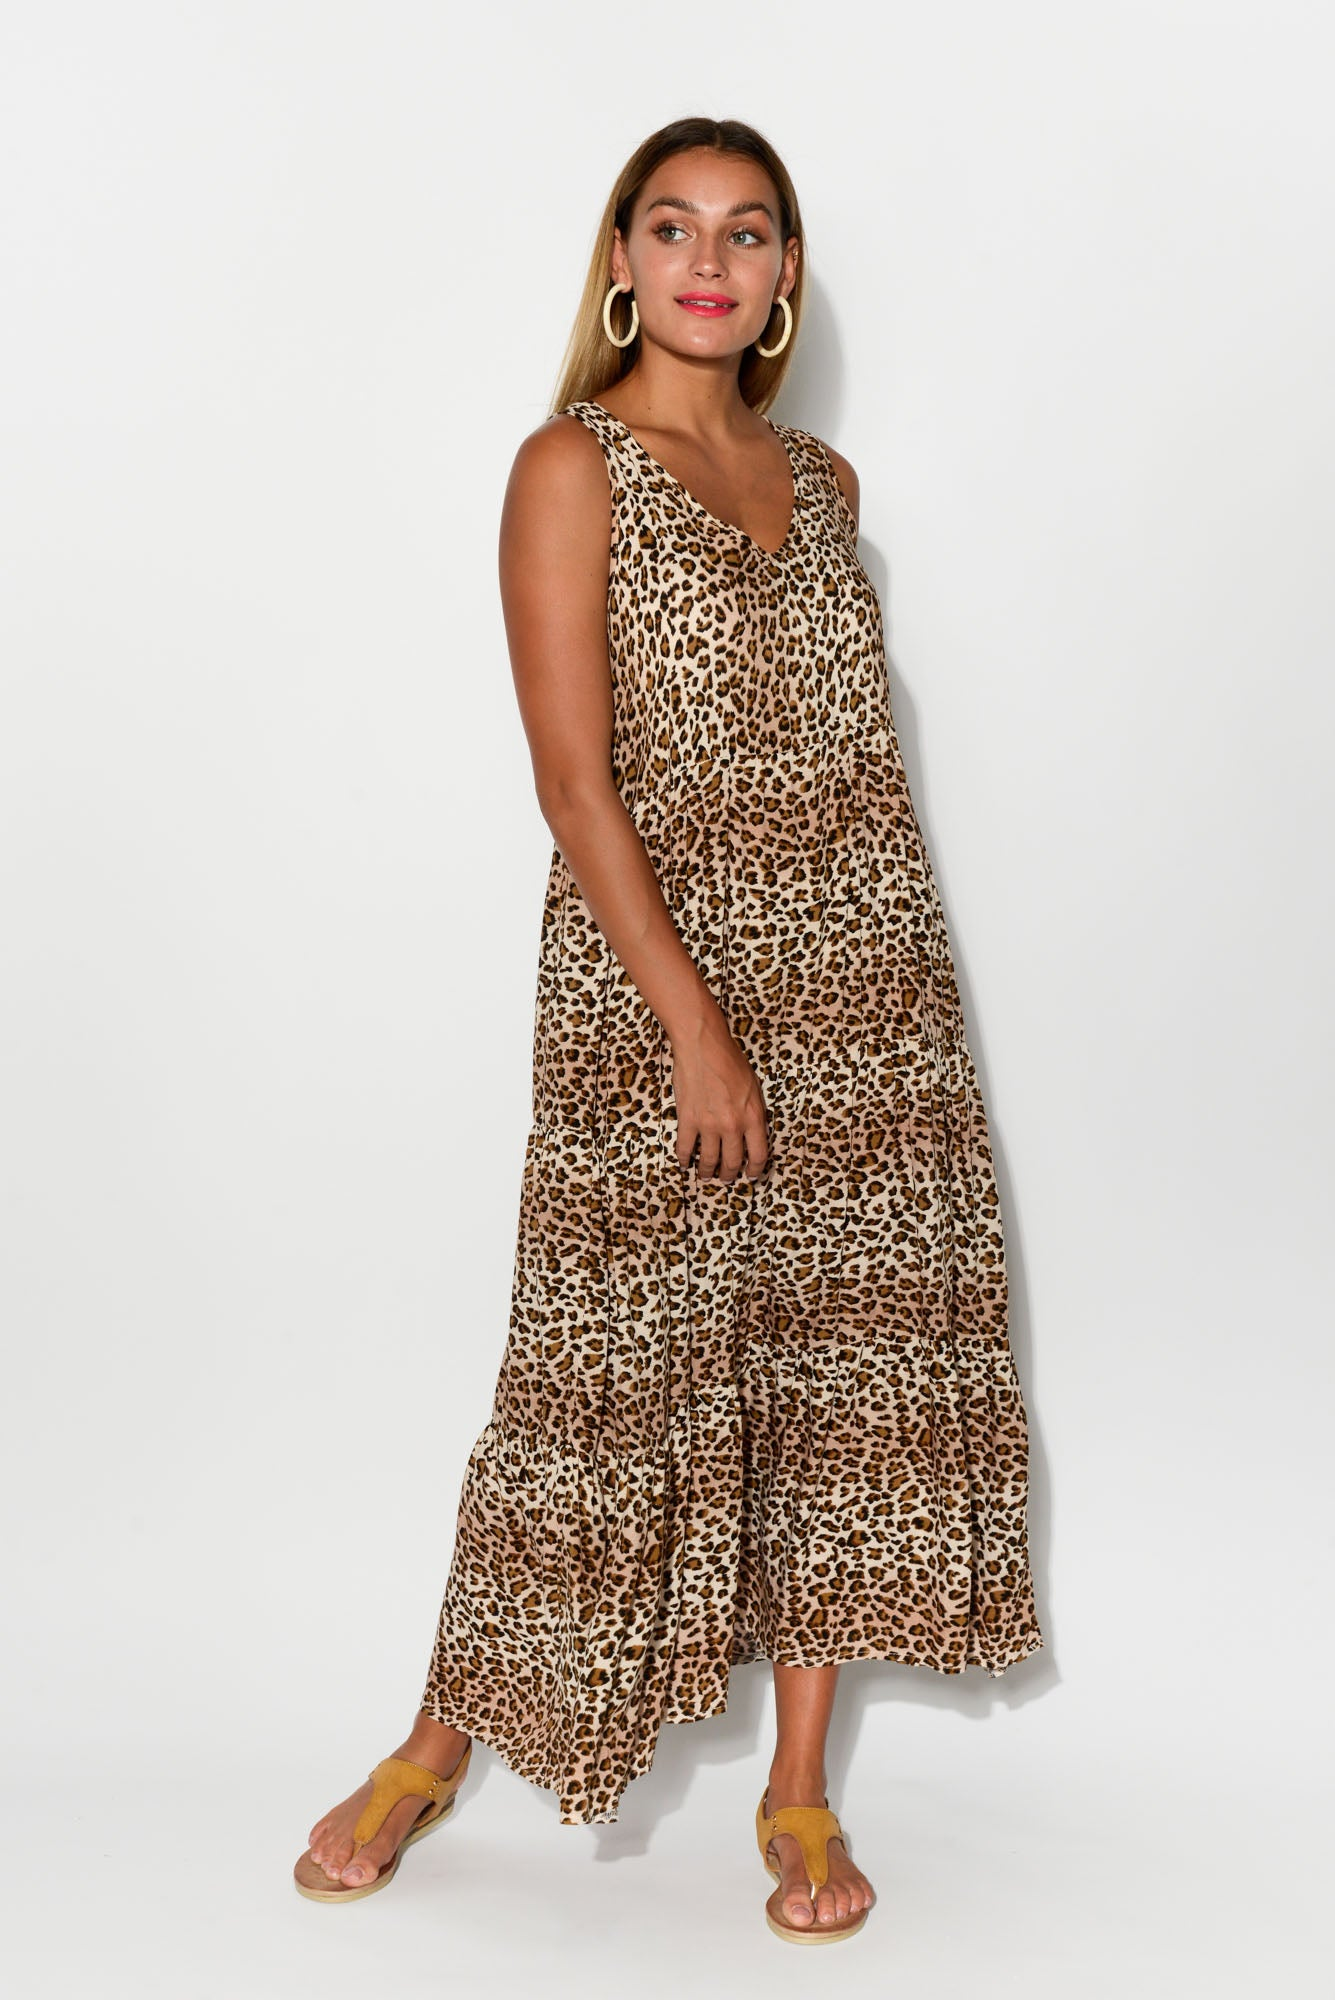 Luna Leopard Tier Dress - Blue Bungalow